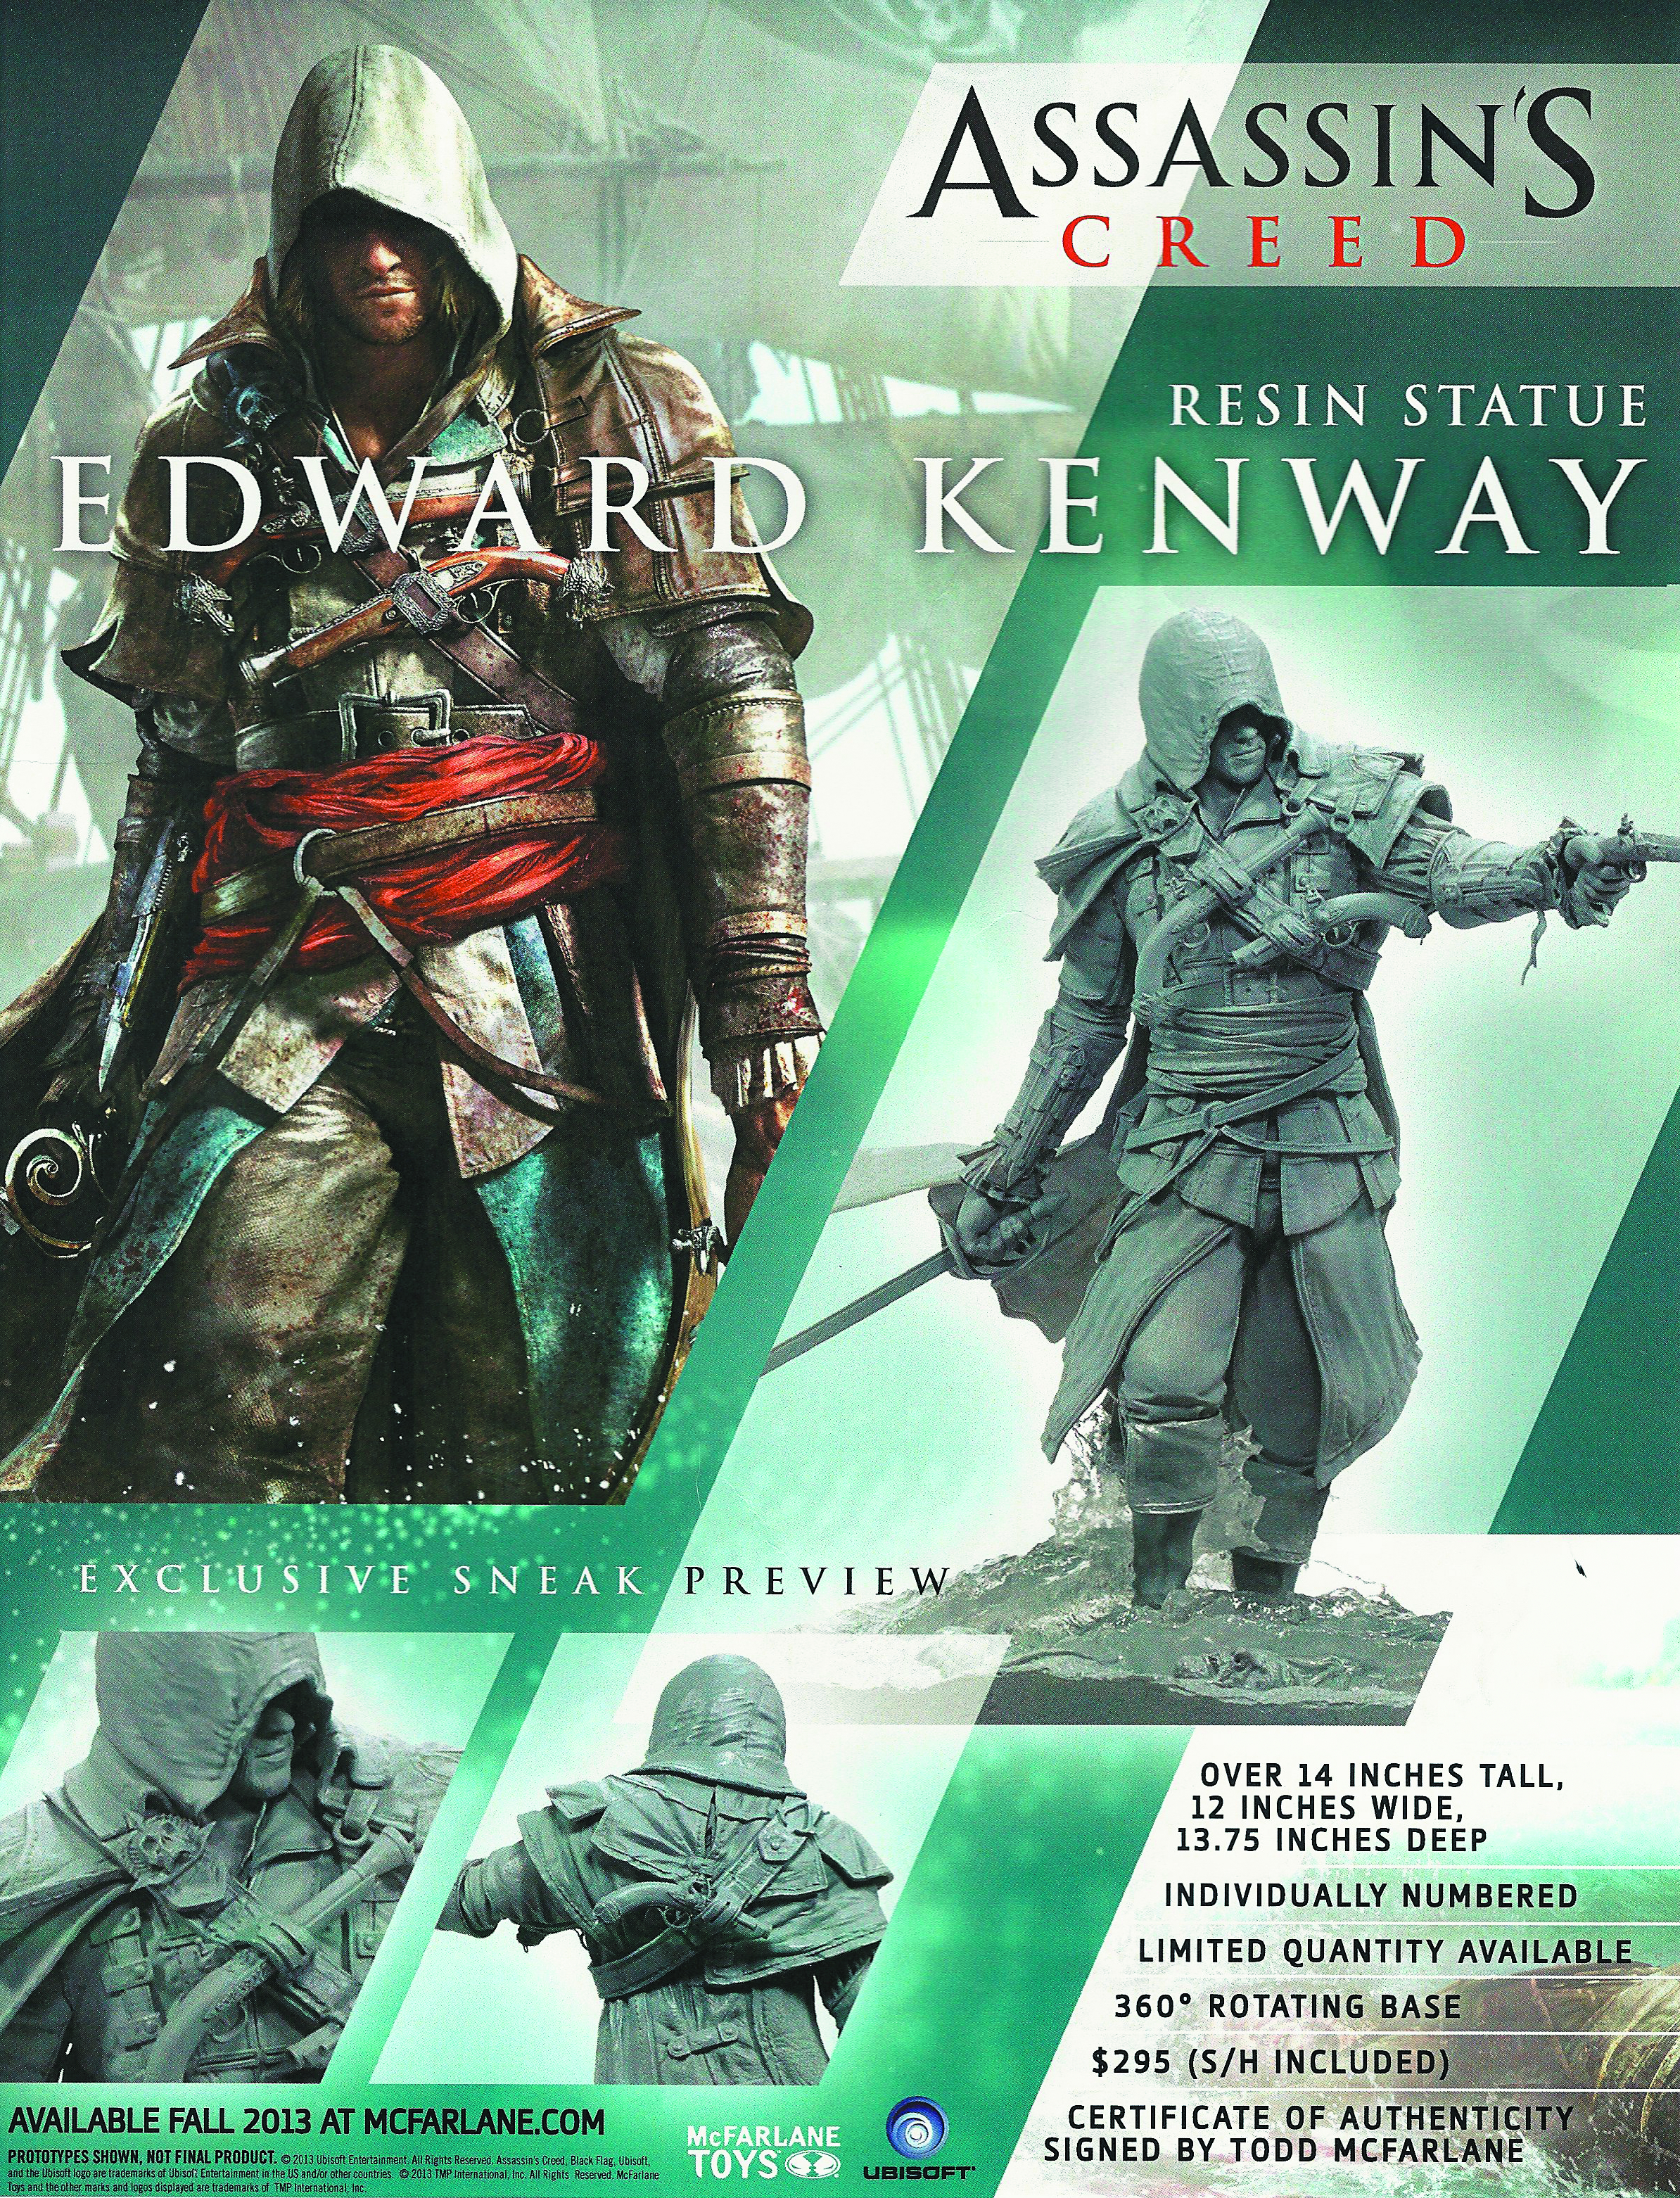 ASSASSINS CREED IV EDWARD KENWAY RESIN STATUE